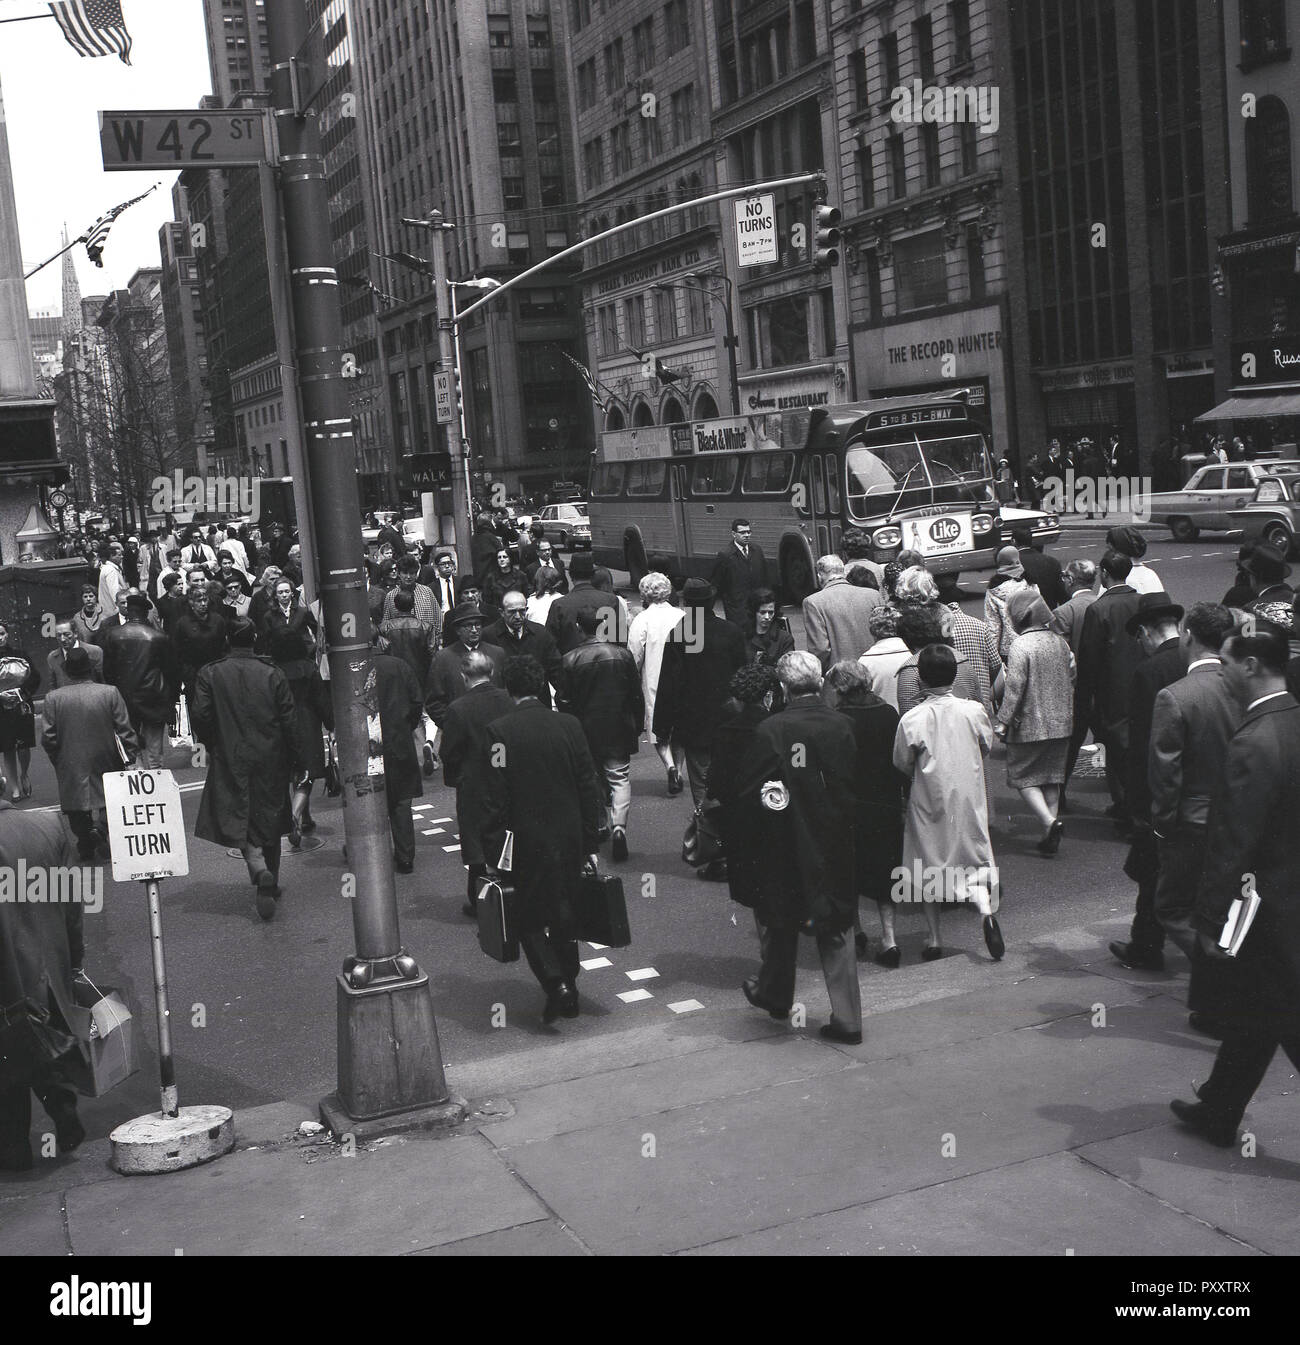 1950s, historical, daytime and New Yorkers at W42 street, a major crosstown street in Manhattan, New York city, USA. - Stock Image